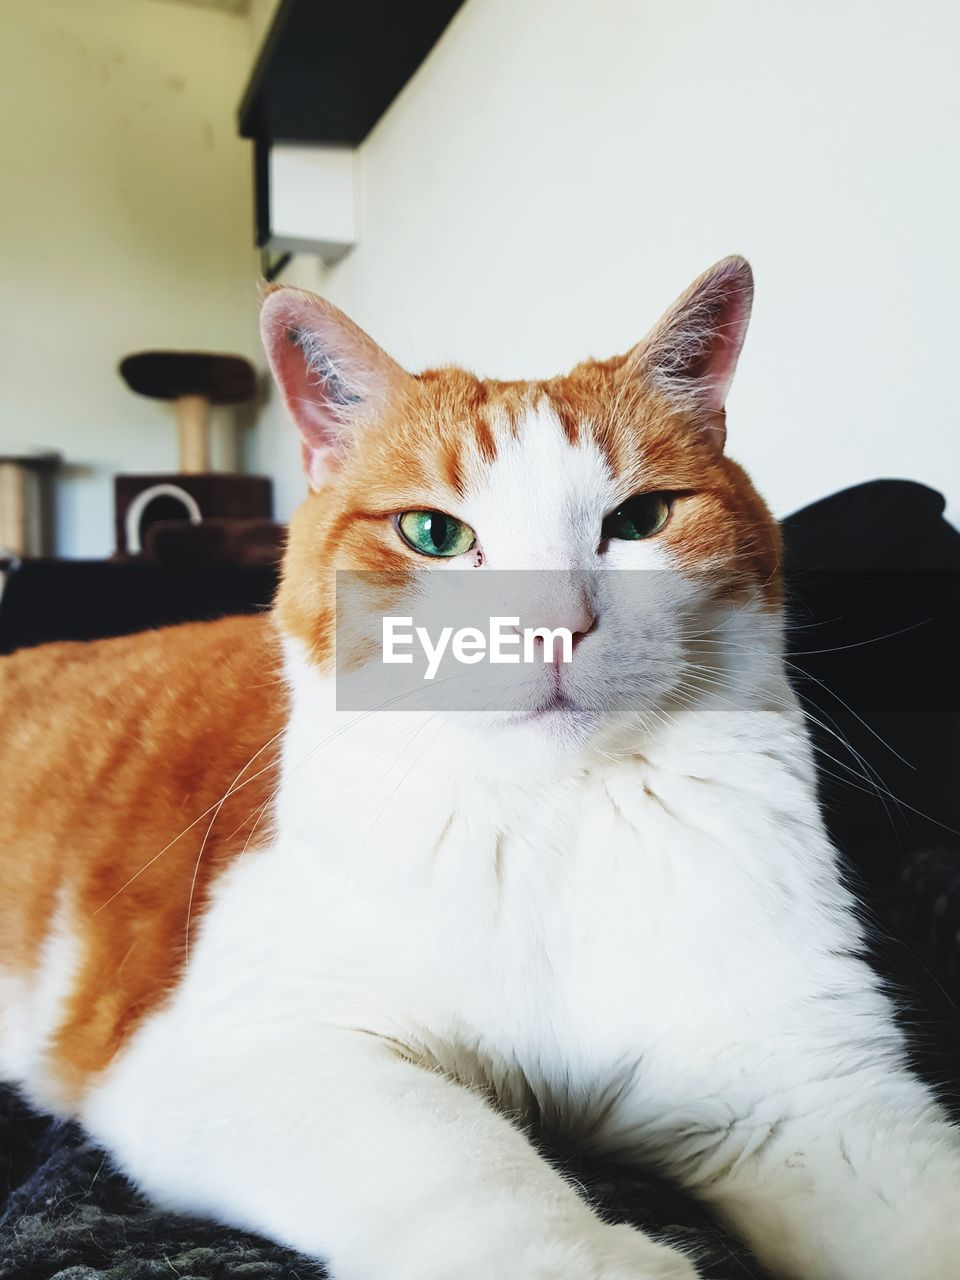 pets, domestic, domestic cat, domestic animals, cat, animal themes, feline, animal, one animal, mammal, vertebrate, indoors, portrait, close-up, no people, looking at camera, relaxation, whisker, home interior, focus on foreground, animal head, yellow eyes